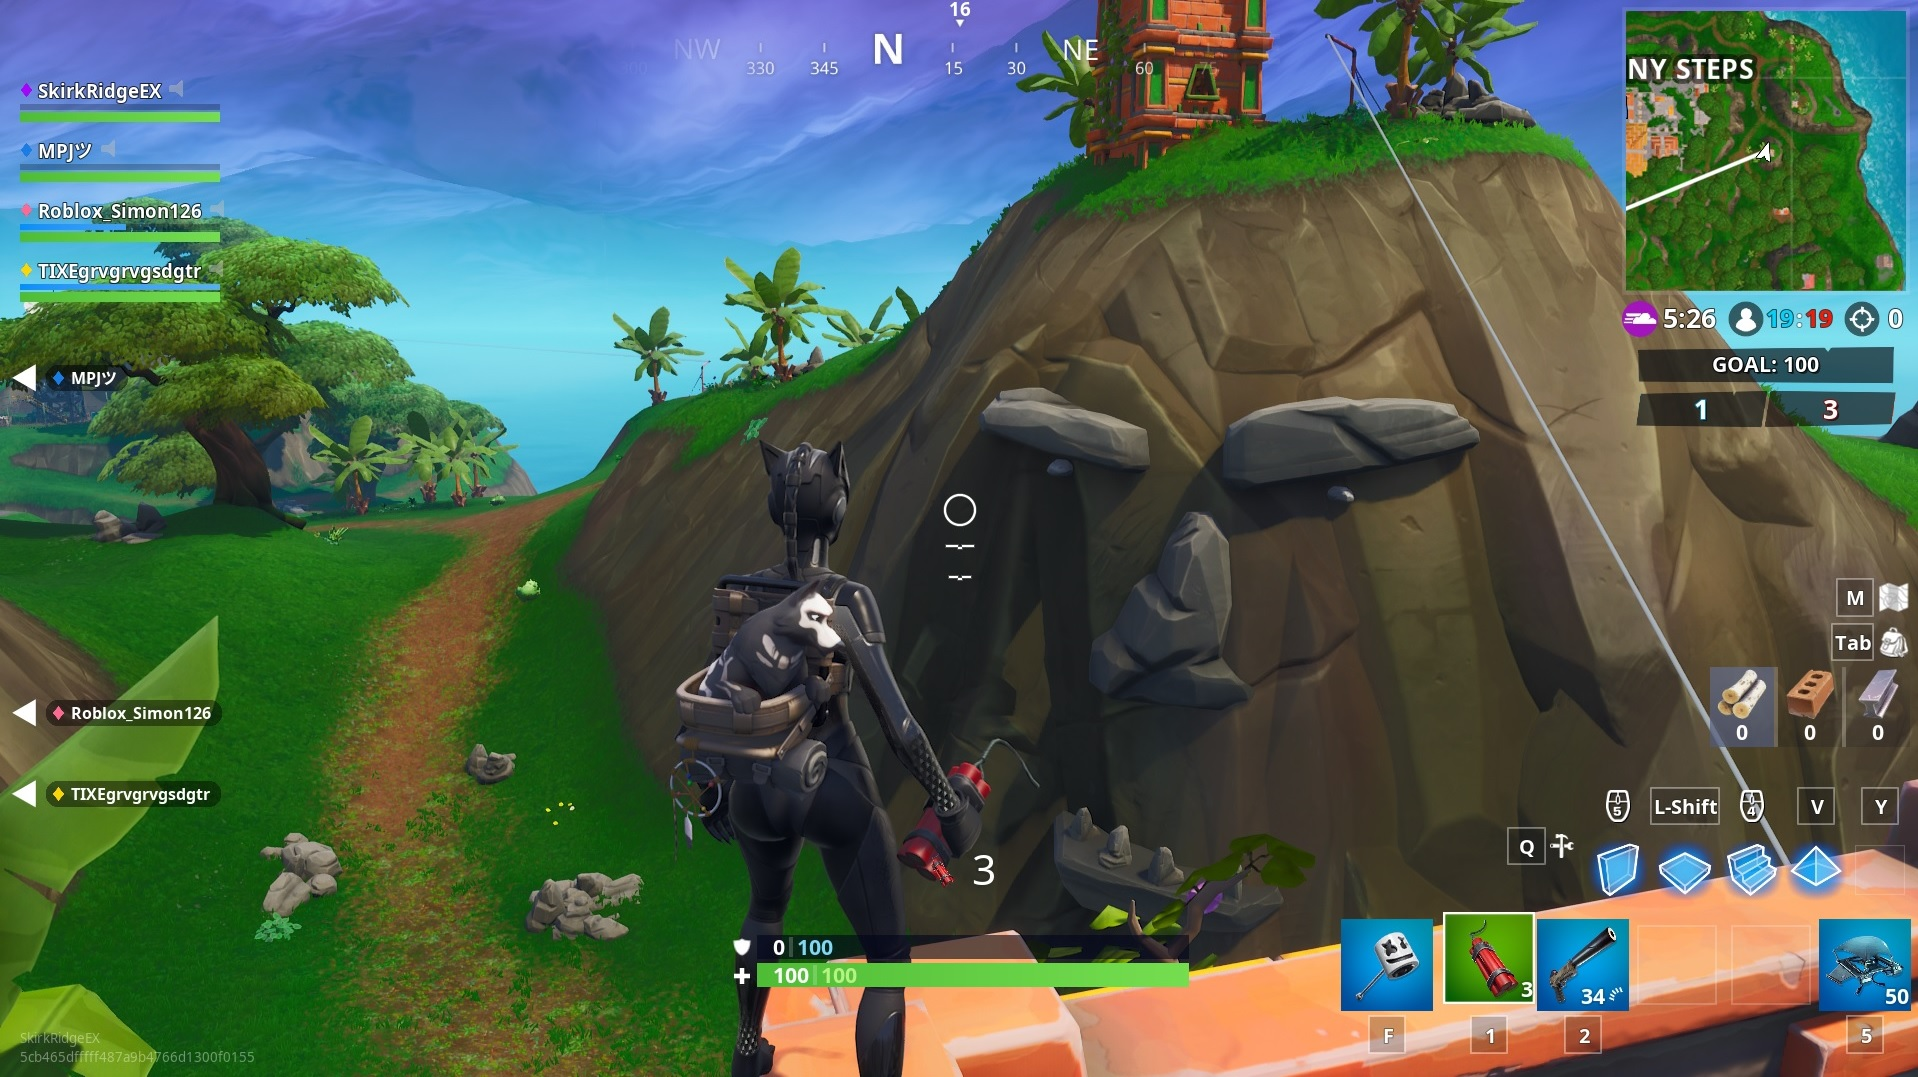 the jungle biome head near sunny steps - giant face locations fortnite